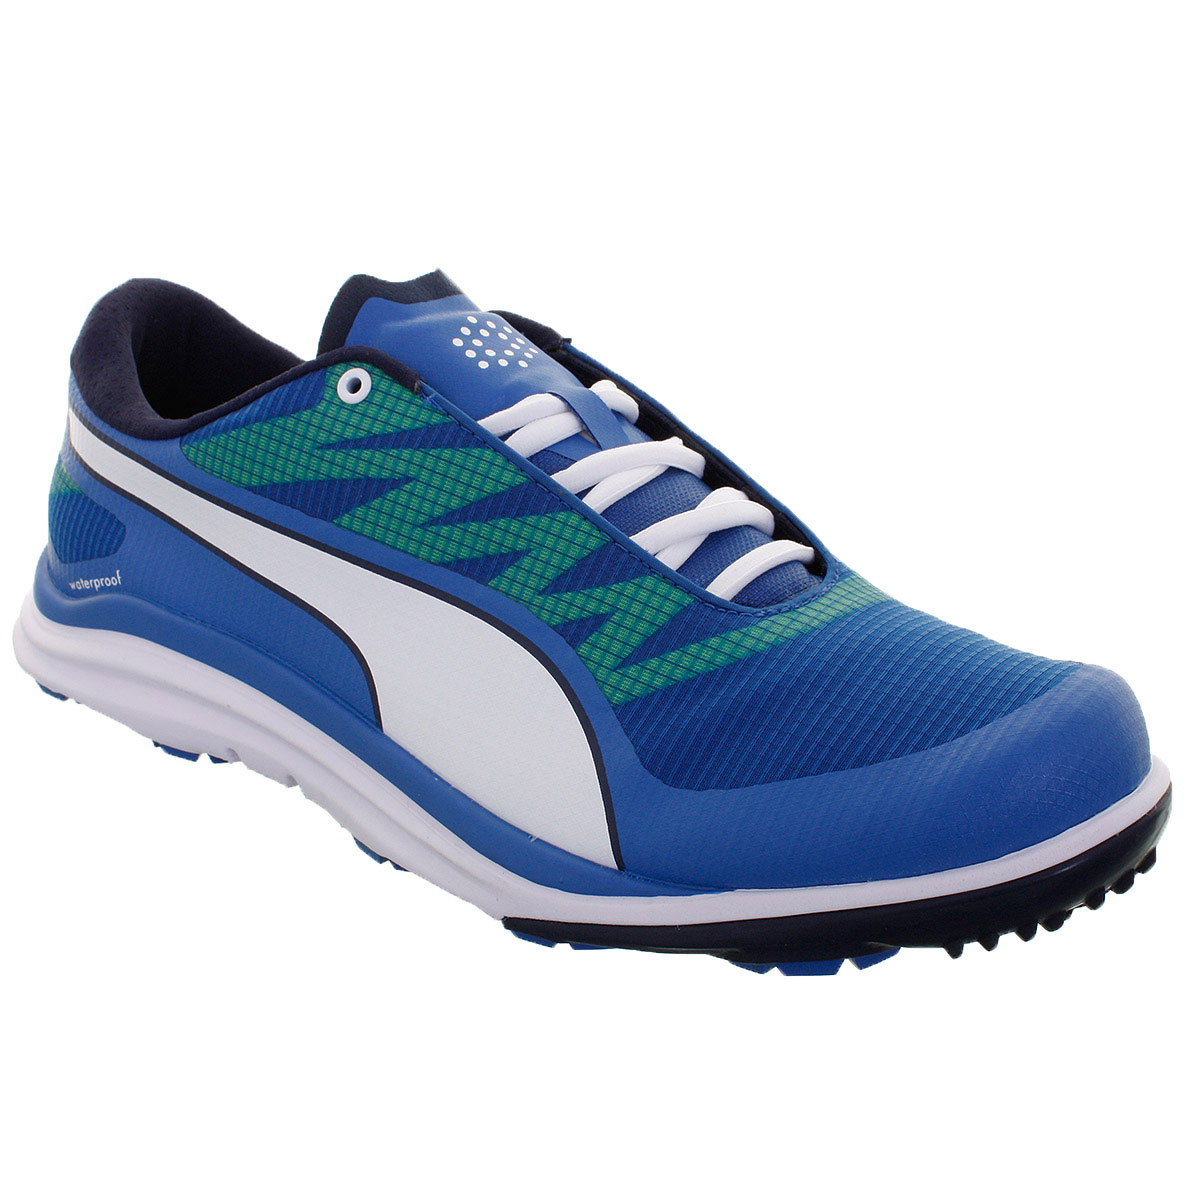 How To Waterproof Mesh Golf Shoes